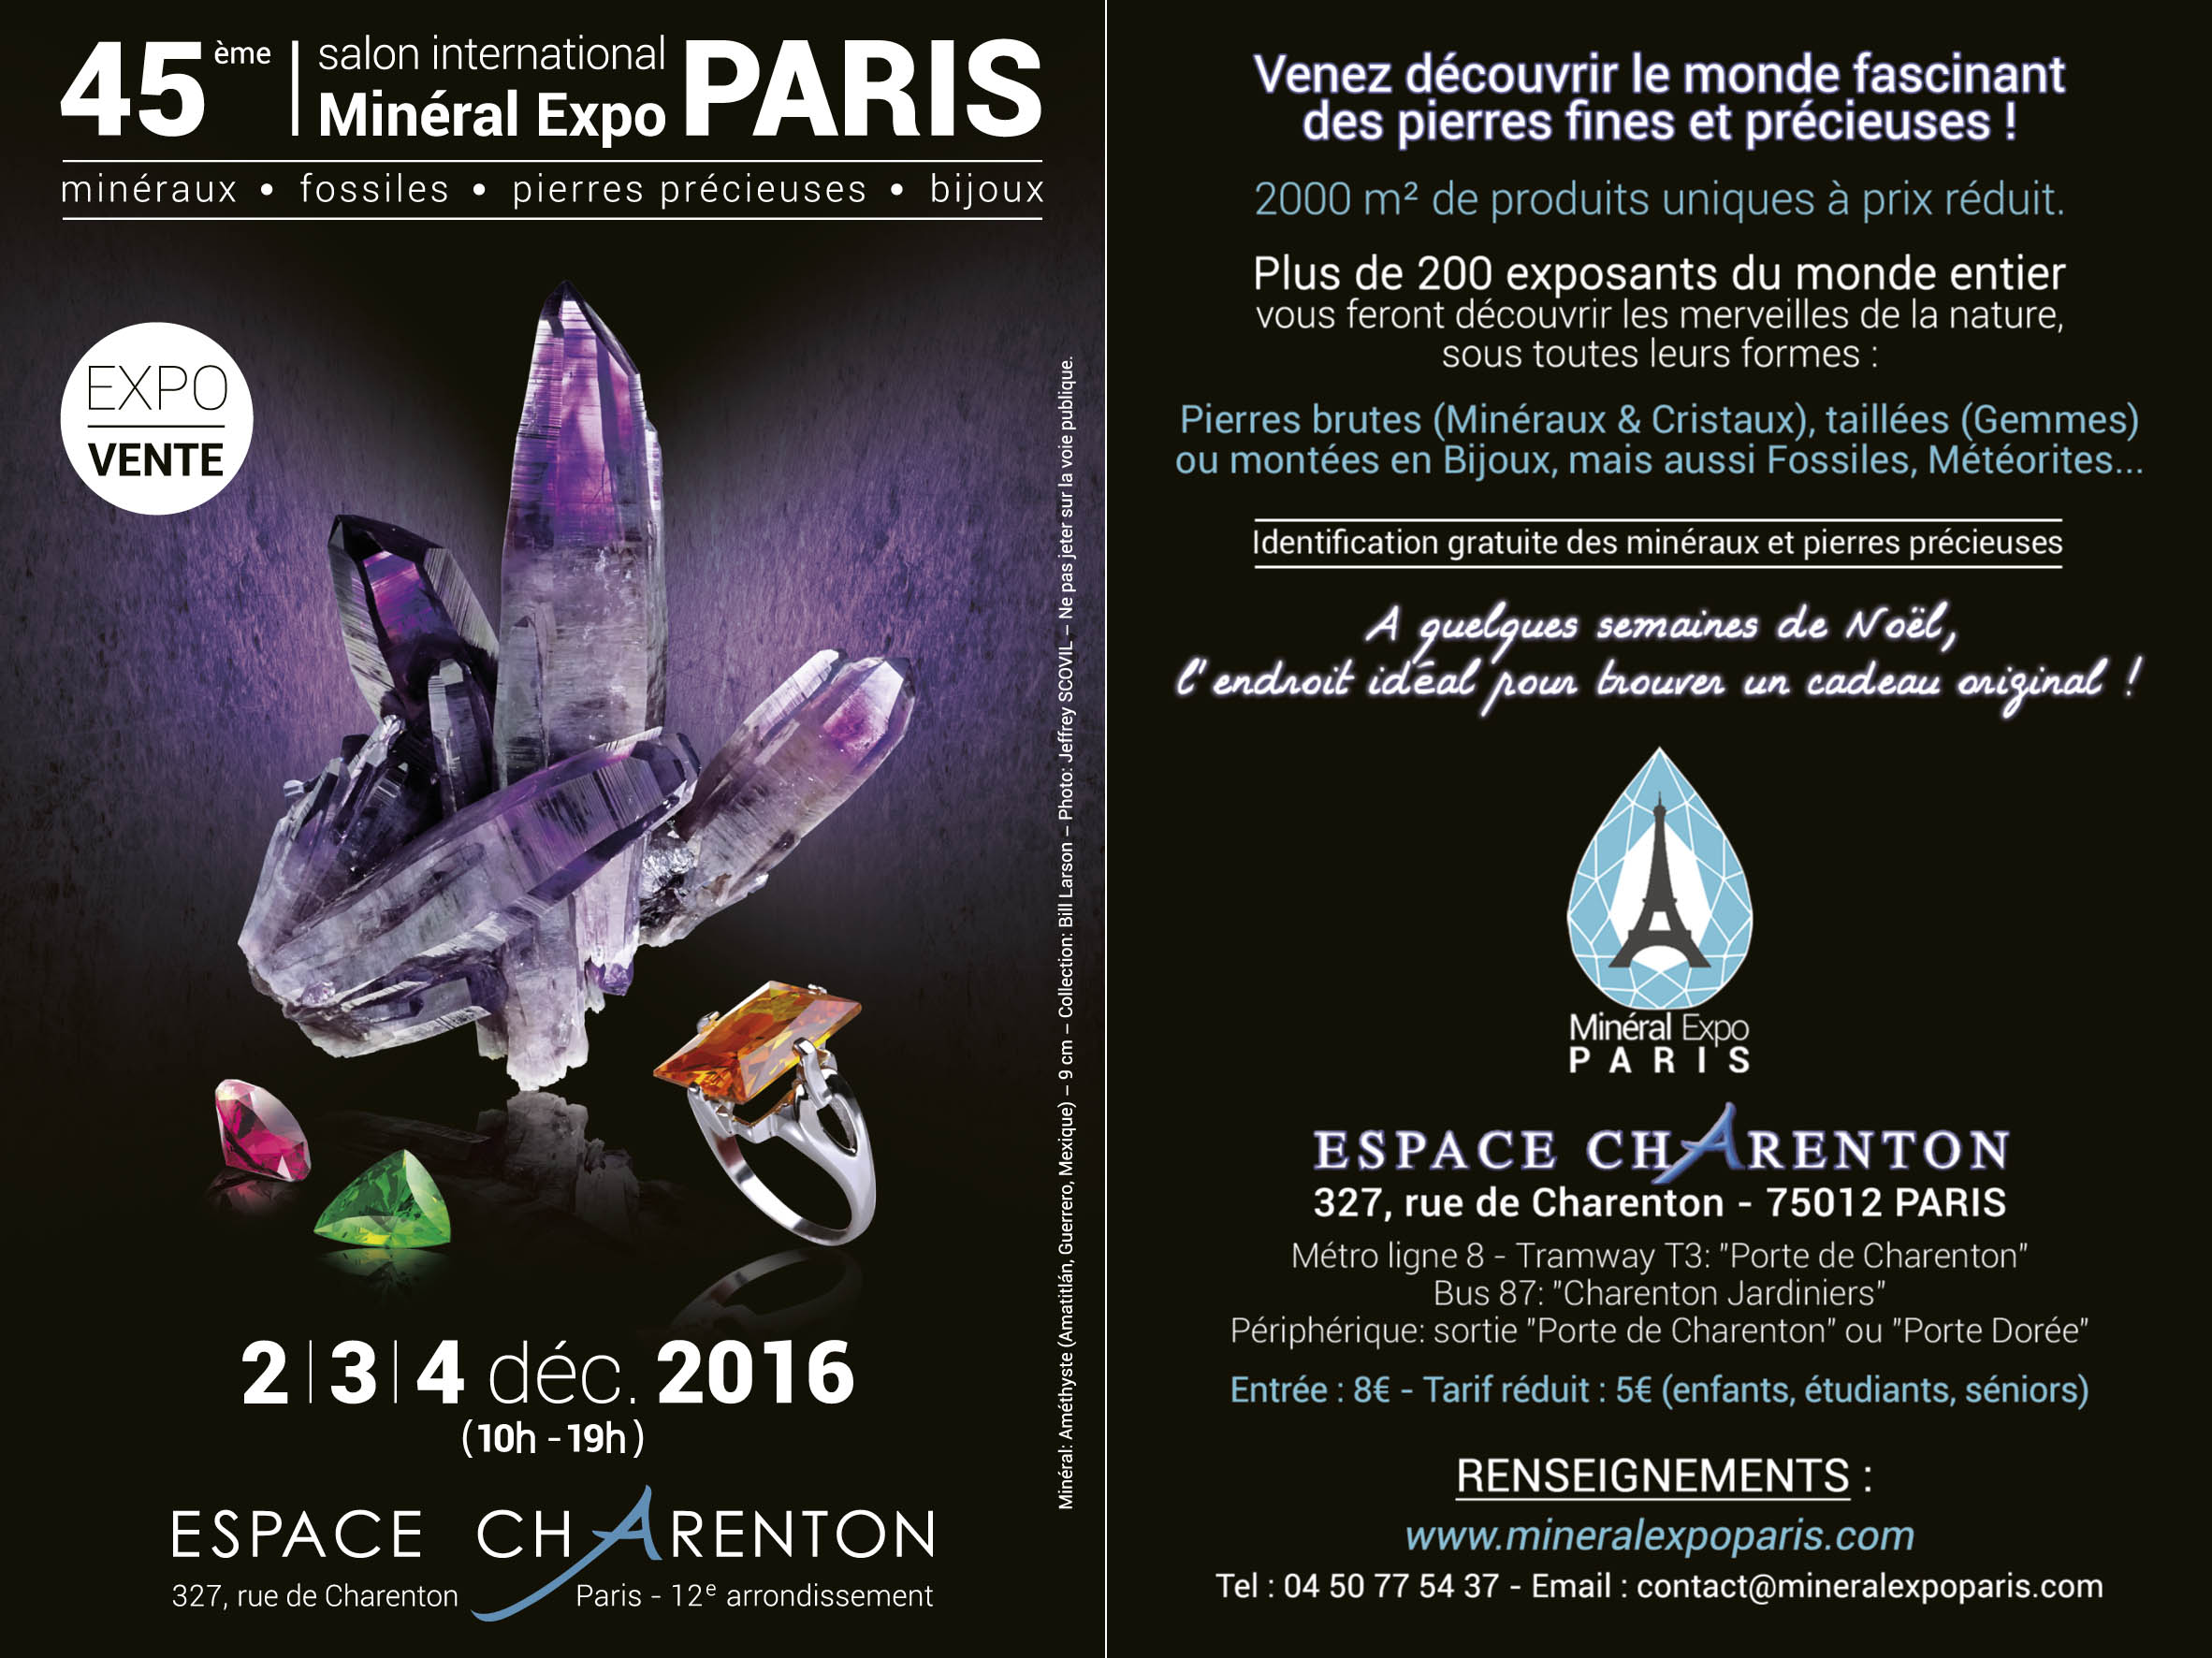 final - Flyer 2014 - 10x15cm - Mineral Expo Paris - imprimeur